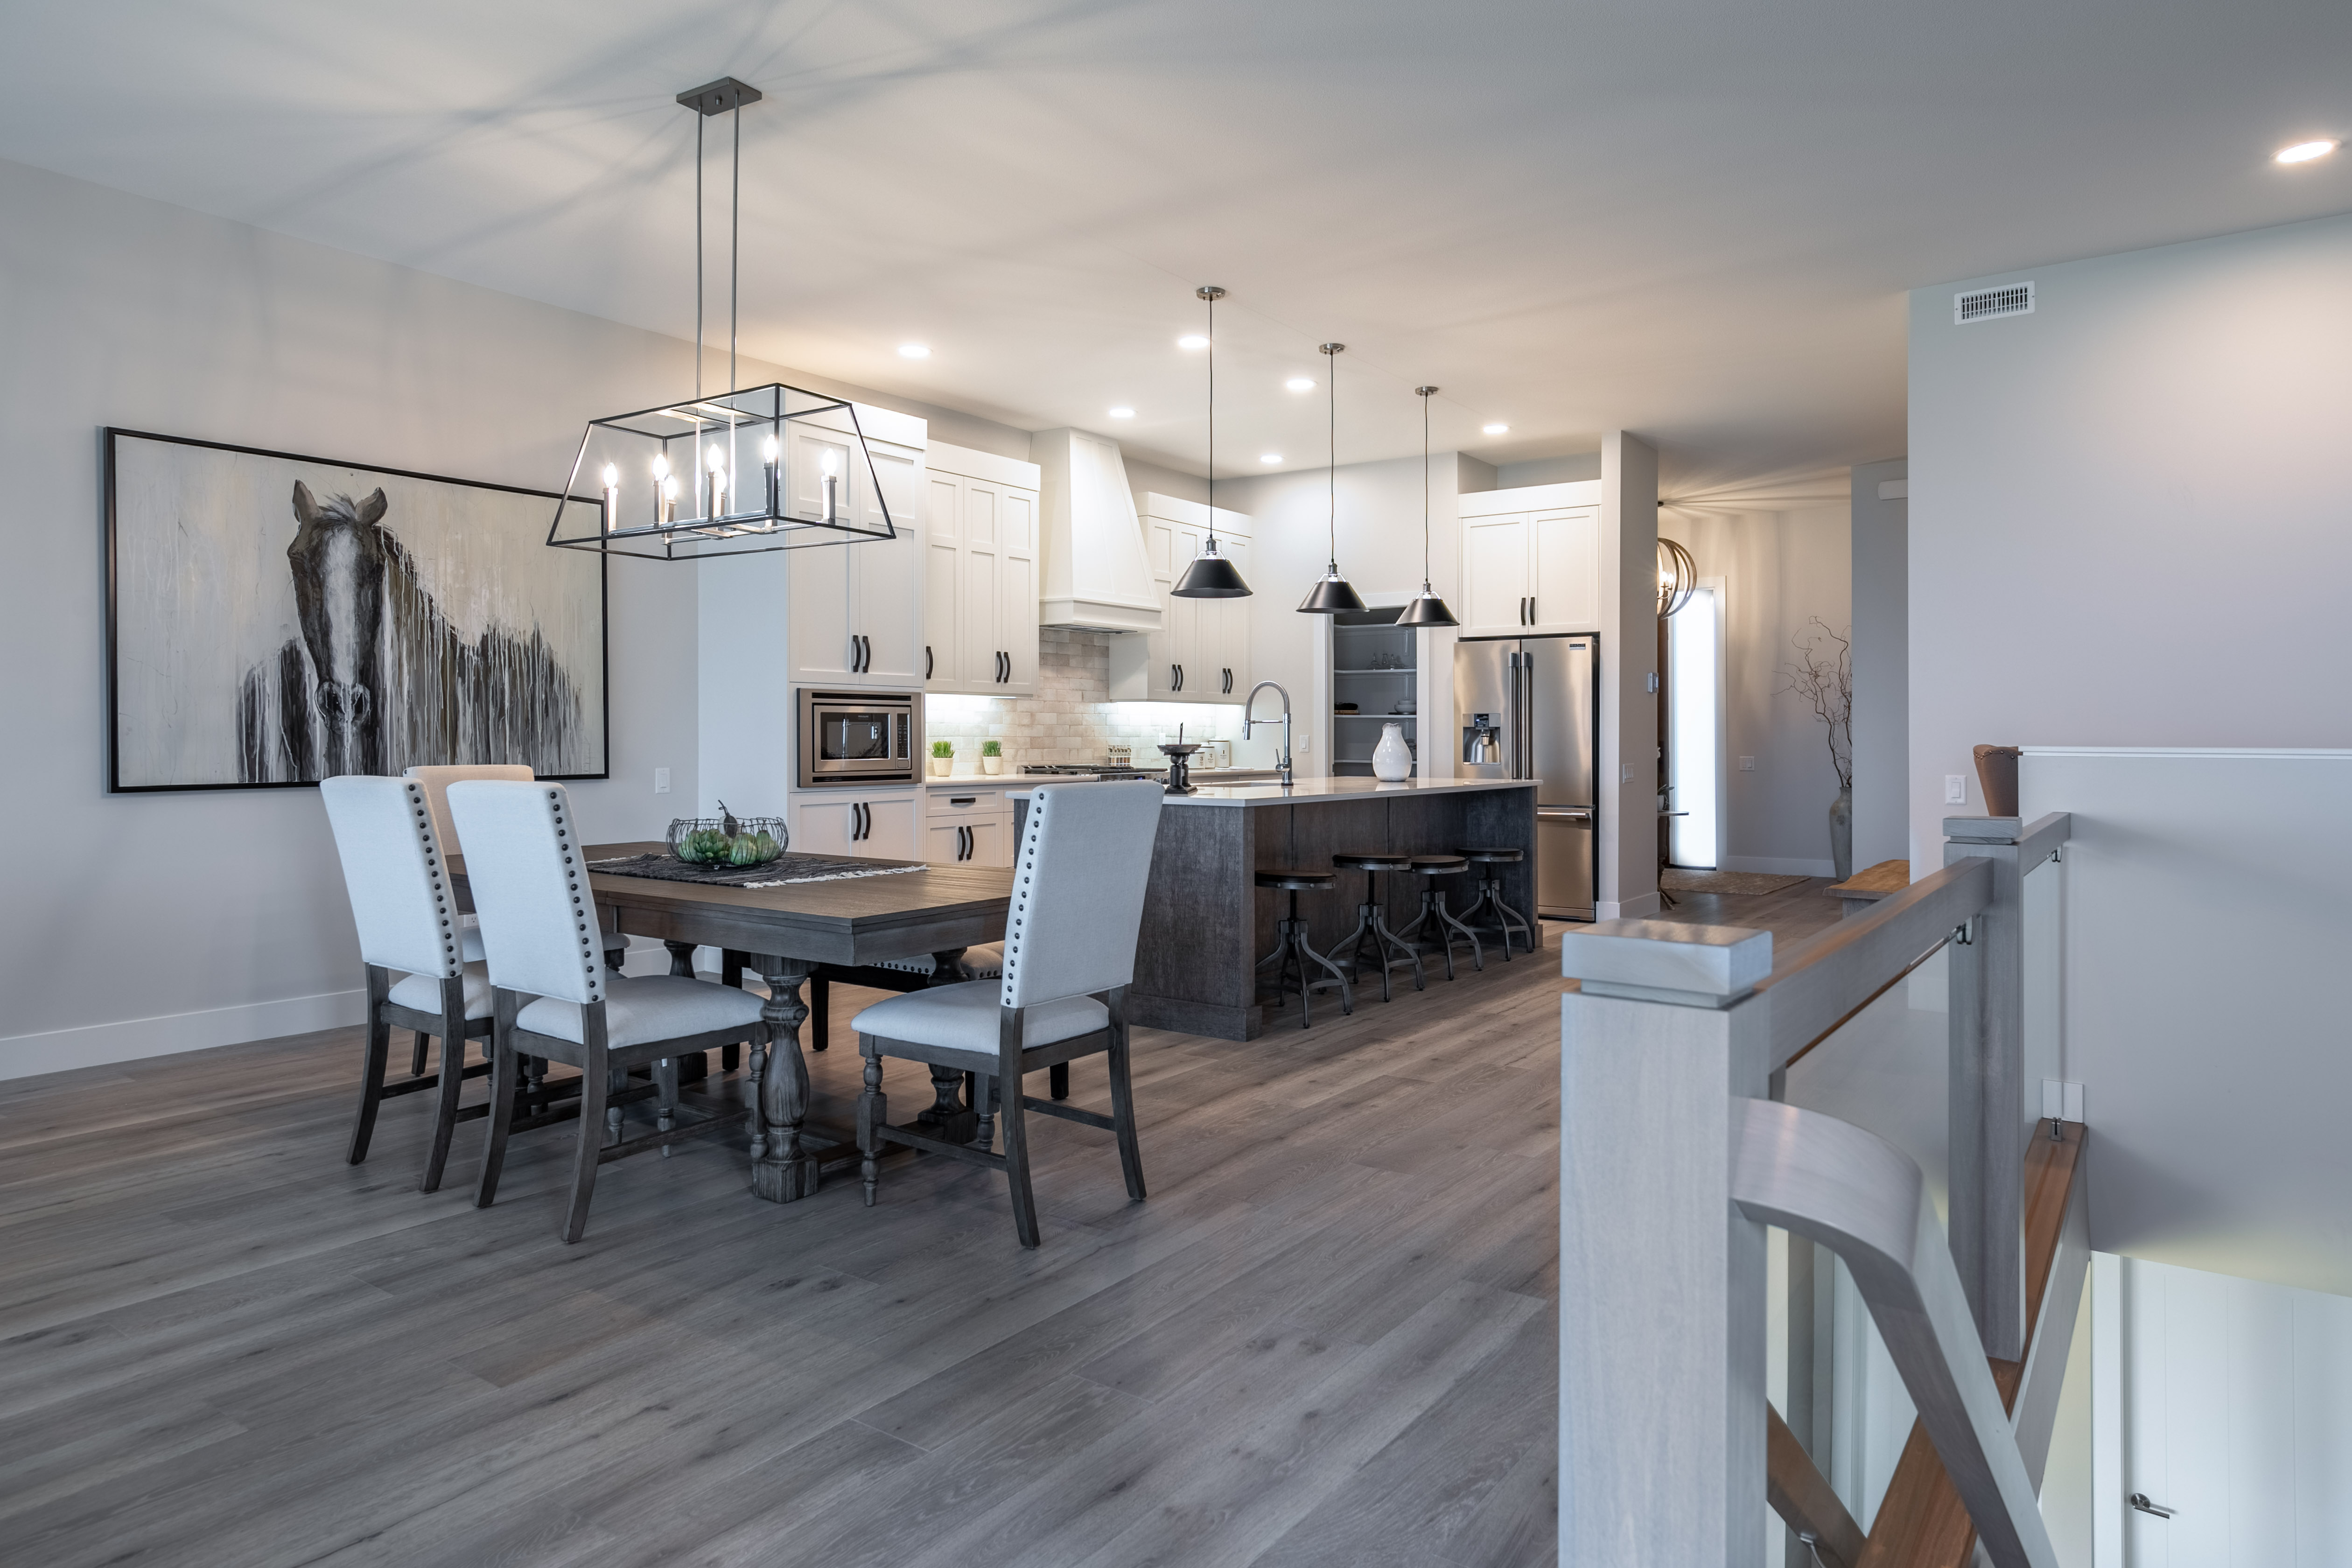 5 Expert Tips on Building Your Dream Home